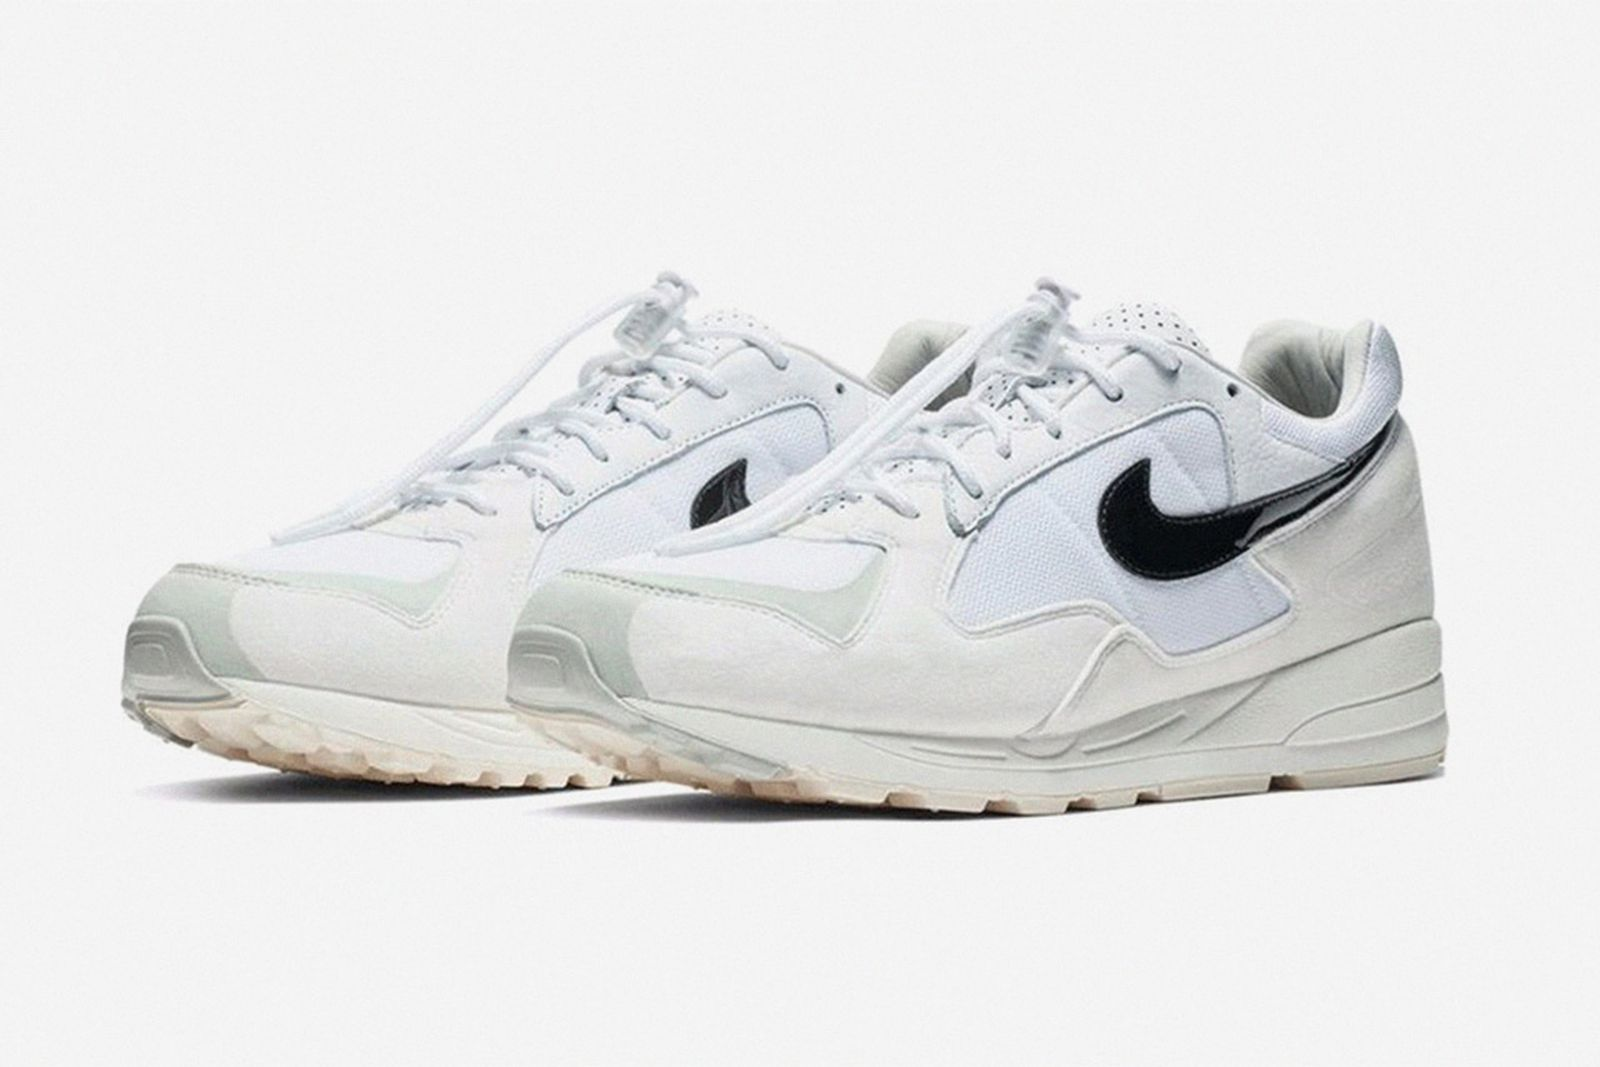 fear of god nike air skylon 2 release date price Jerry Lorenzo